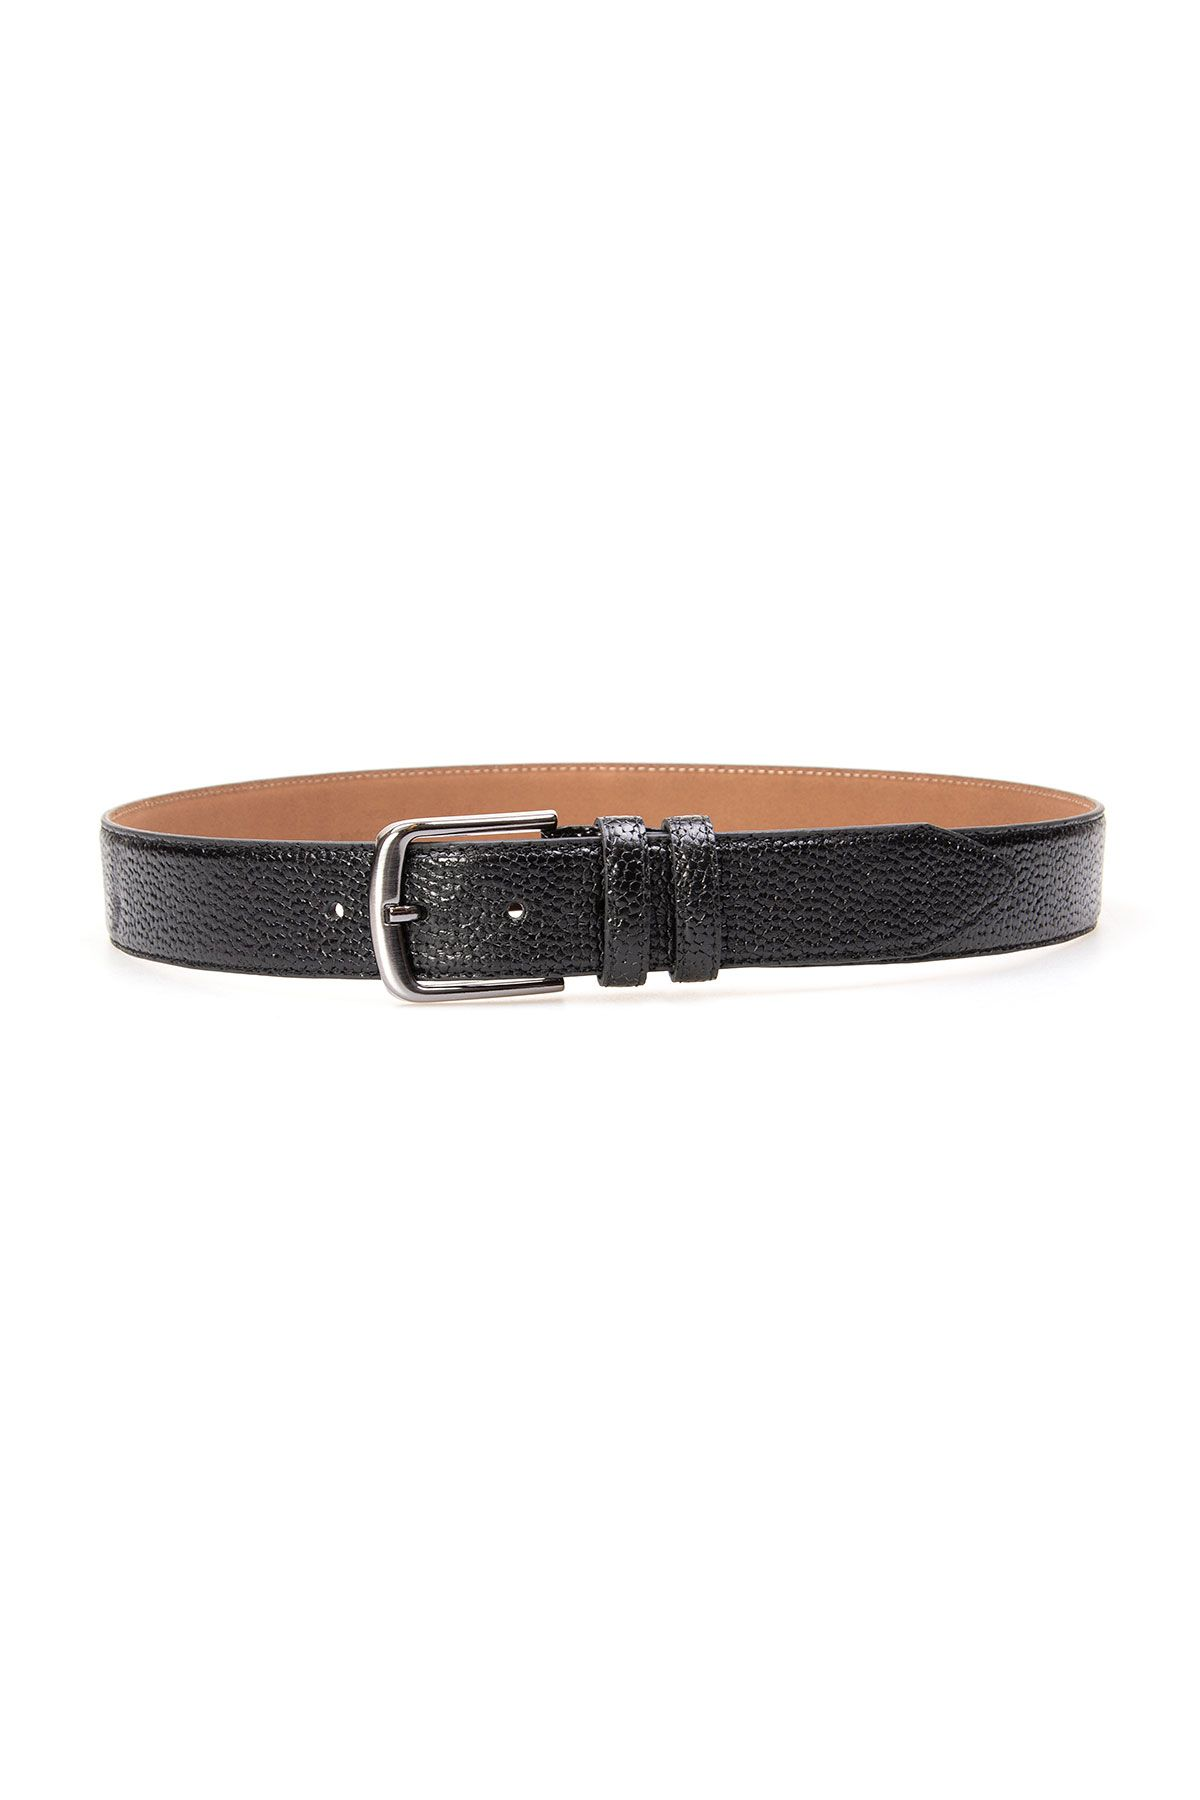 Pegia Men's Genuine Leather Belt 19KMR05 Black